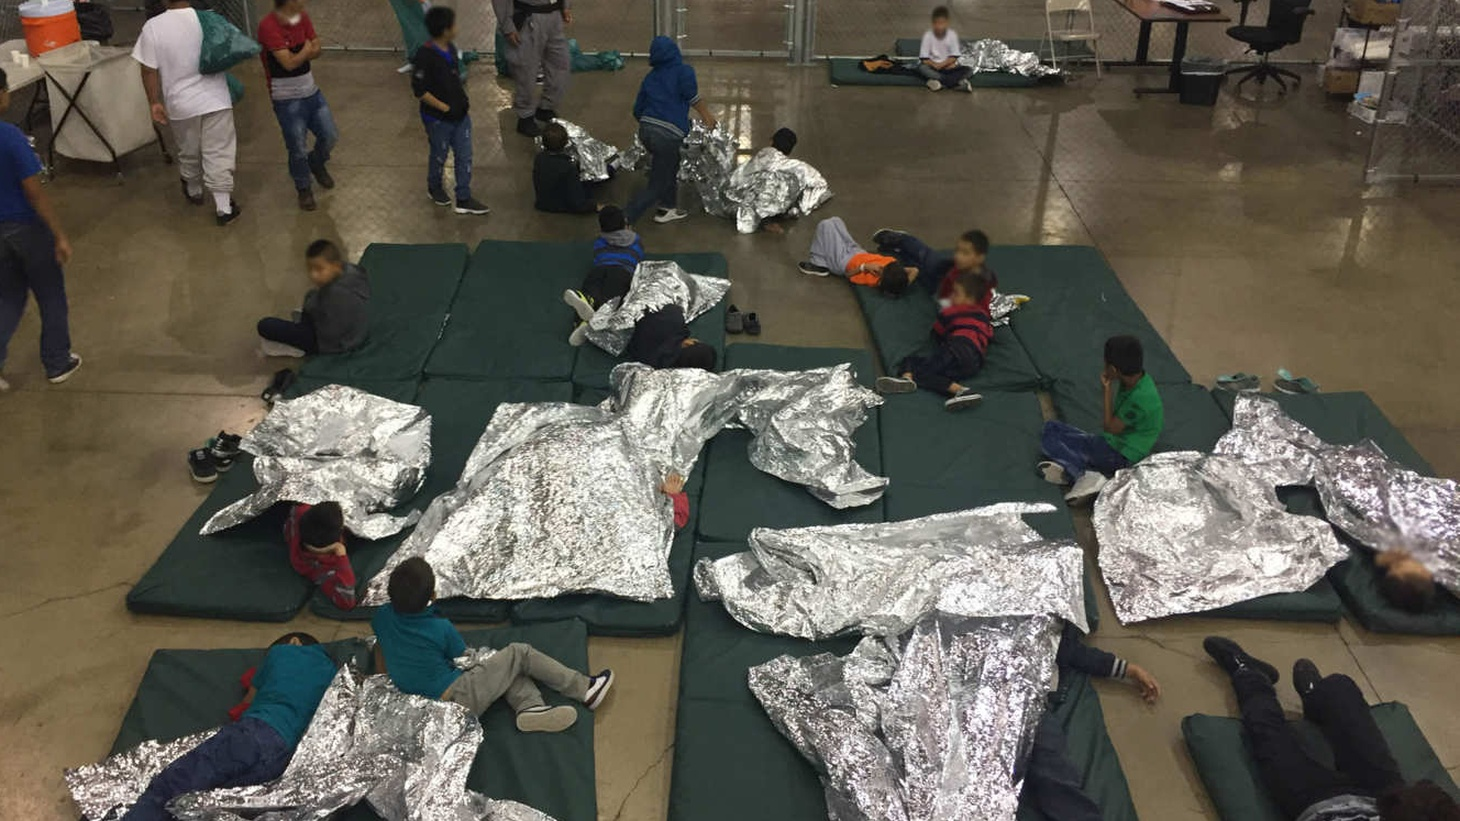 """Separating immigrant families at the border may be something new, but the US has never extended the """"Good Neighbor Policy"""" to Central America. Clinton and Bush discouraged newcomers, and Obama was called, """"Deporter in Chief."""""""